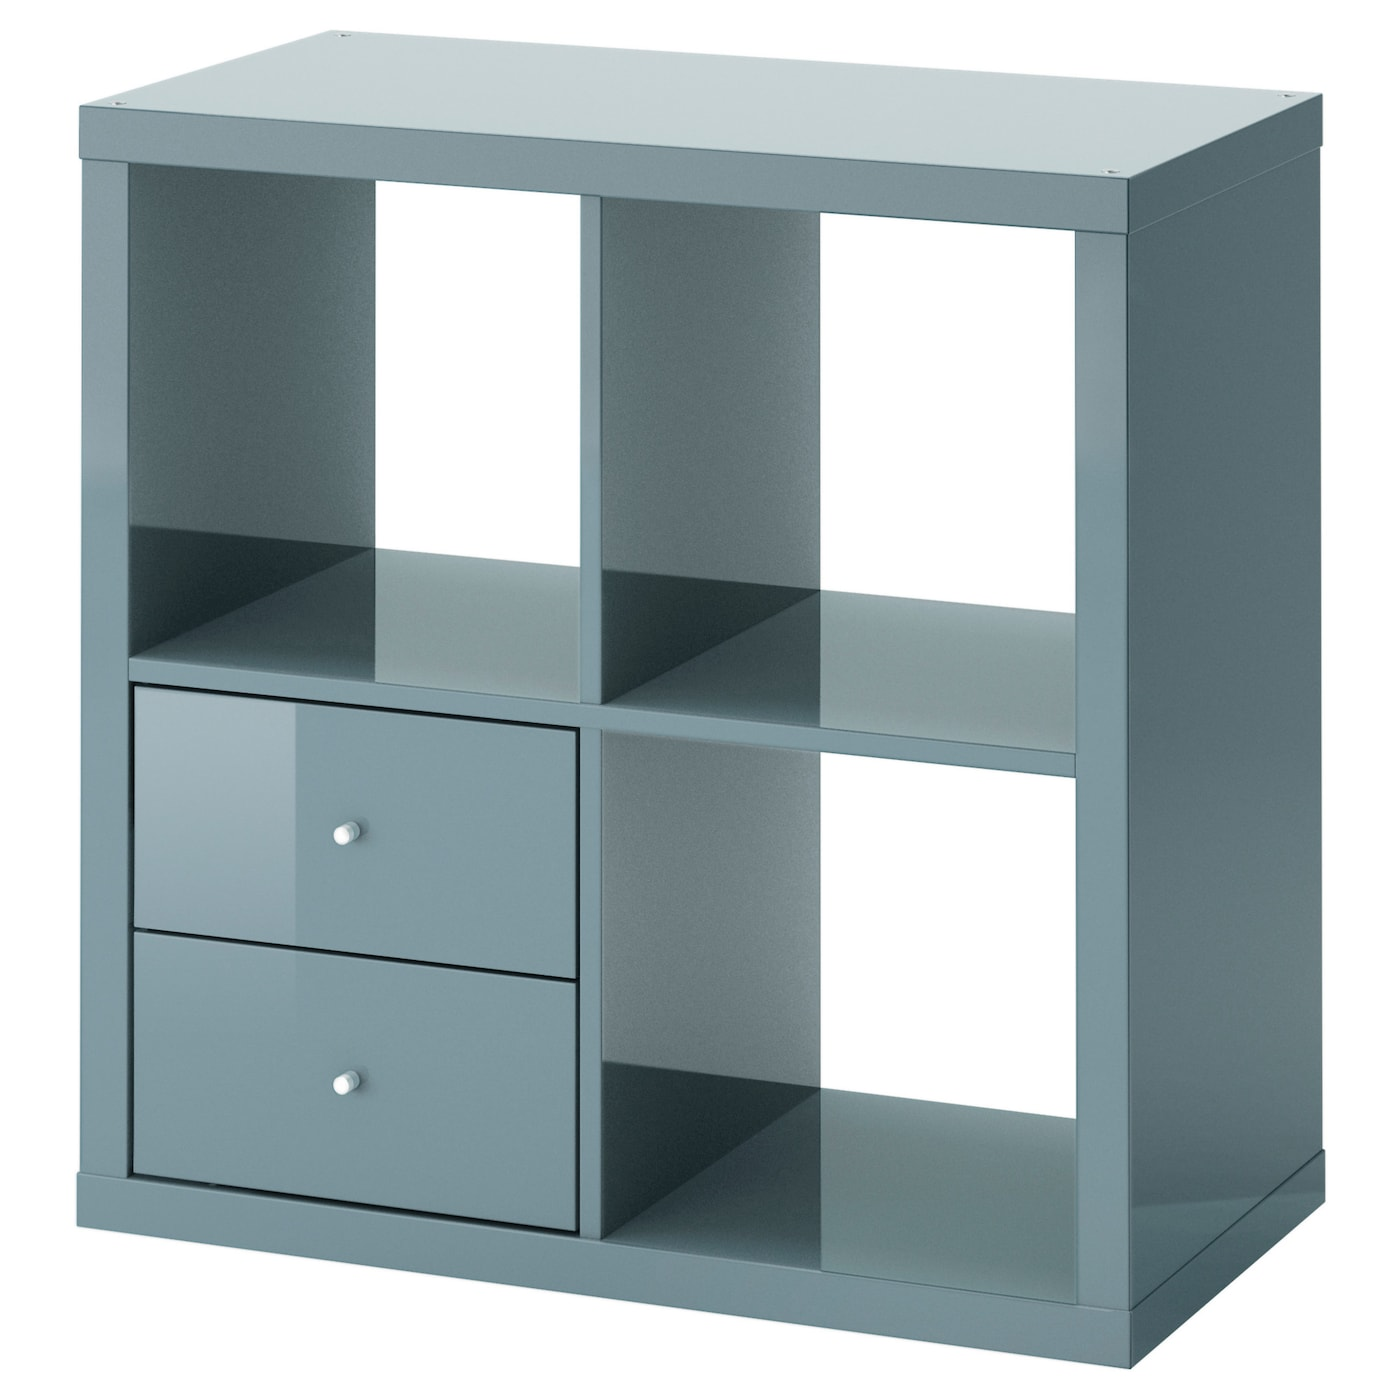 kallax shelving unit with drawers high gloss grey. Black Bedroom Furniture Sets. Home Design Ideas